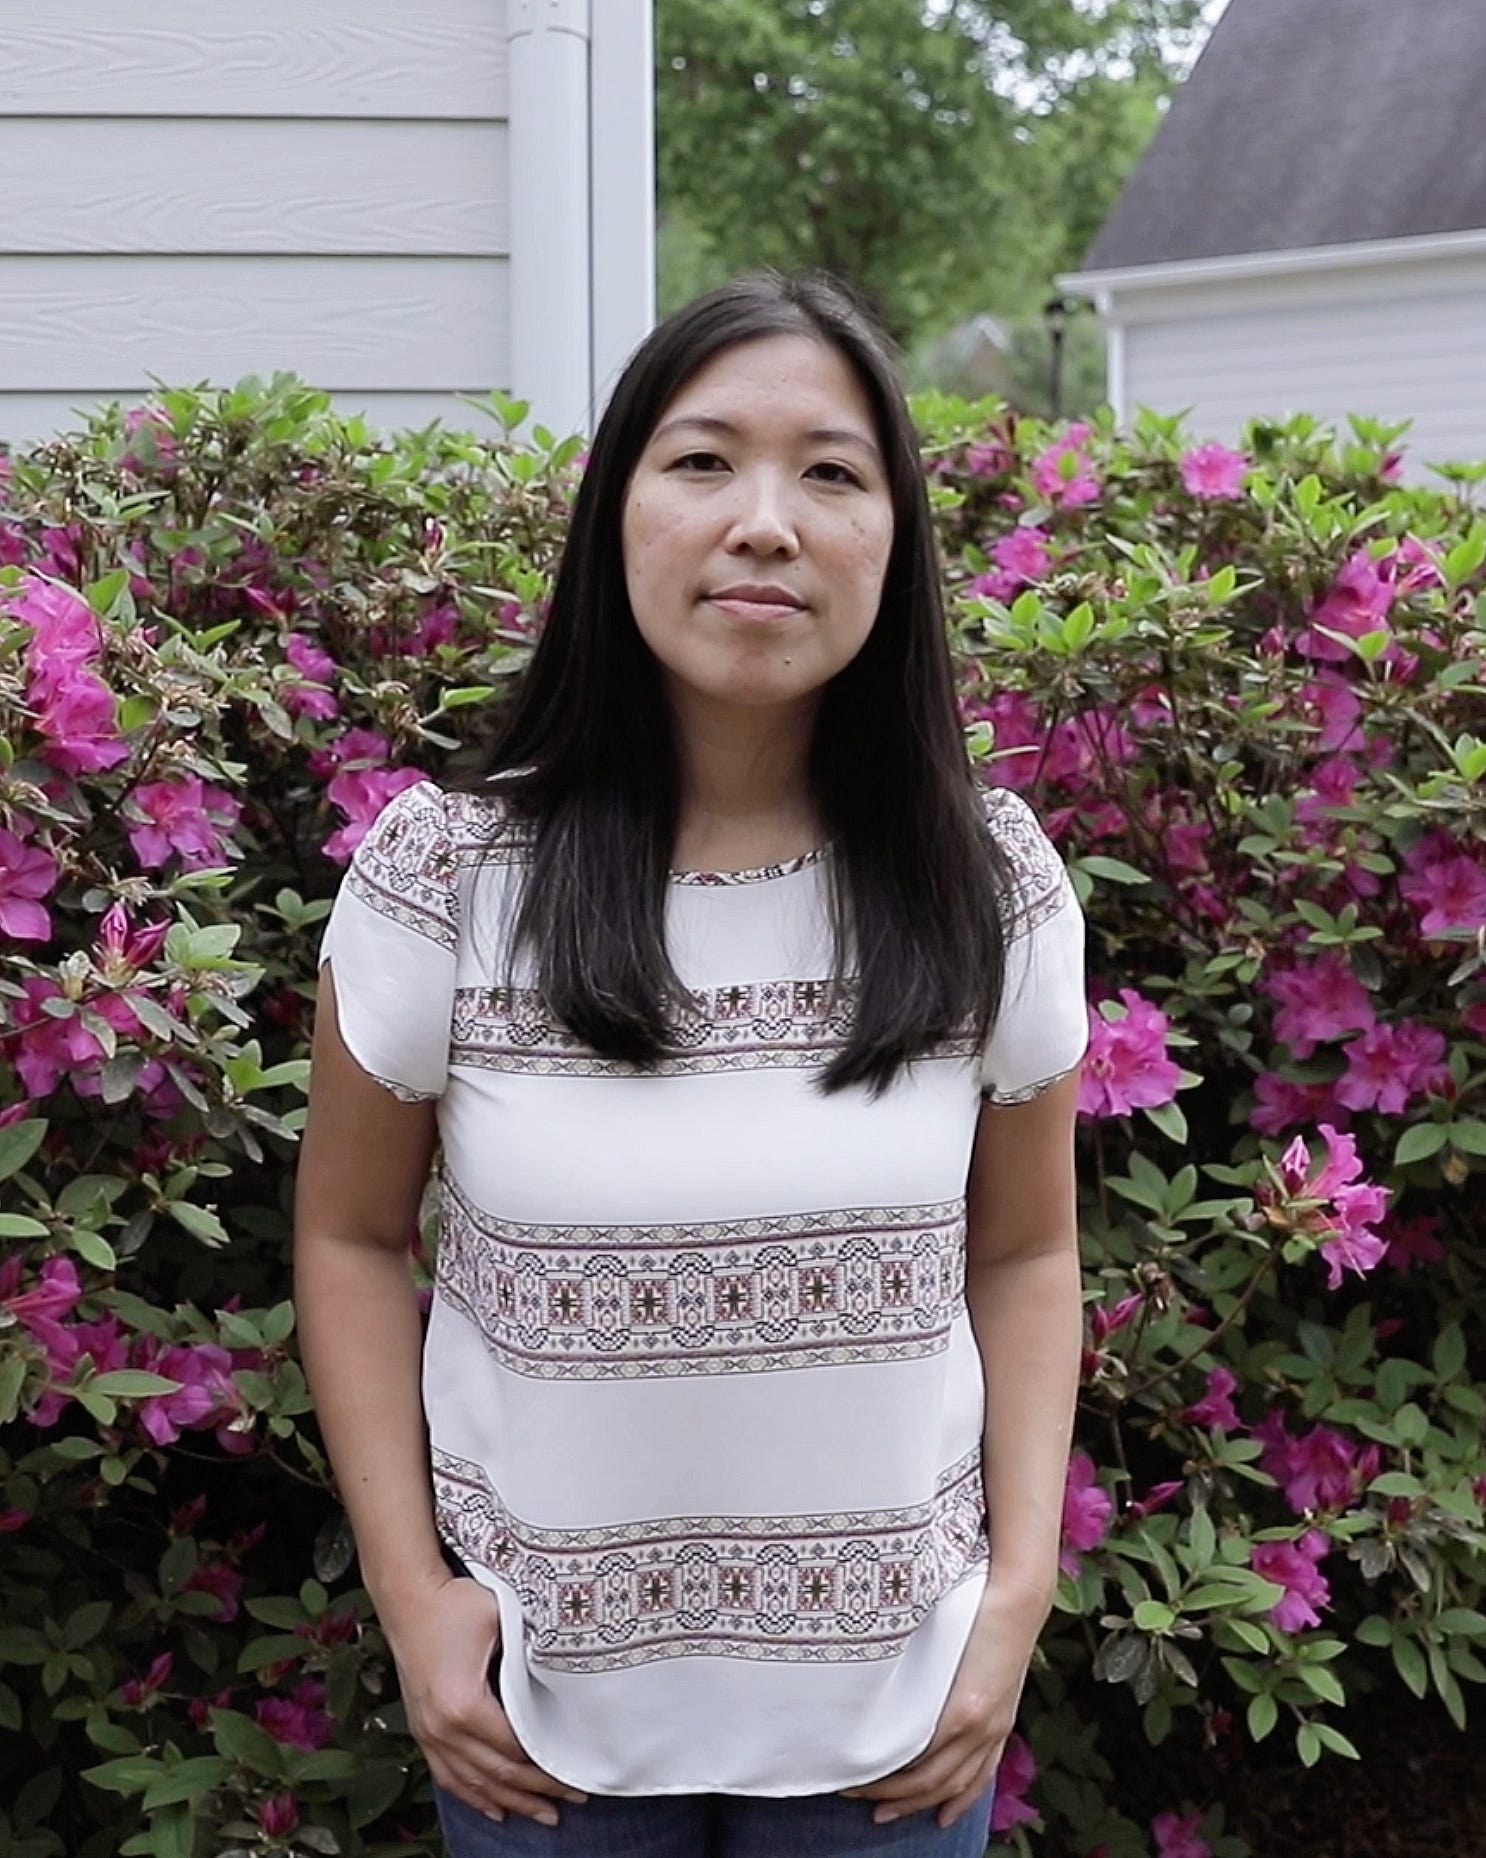 Asian American women after Atlanta shooting: 'This could have been me' 2